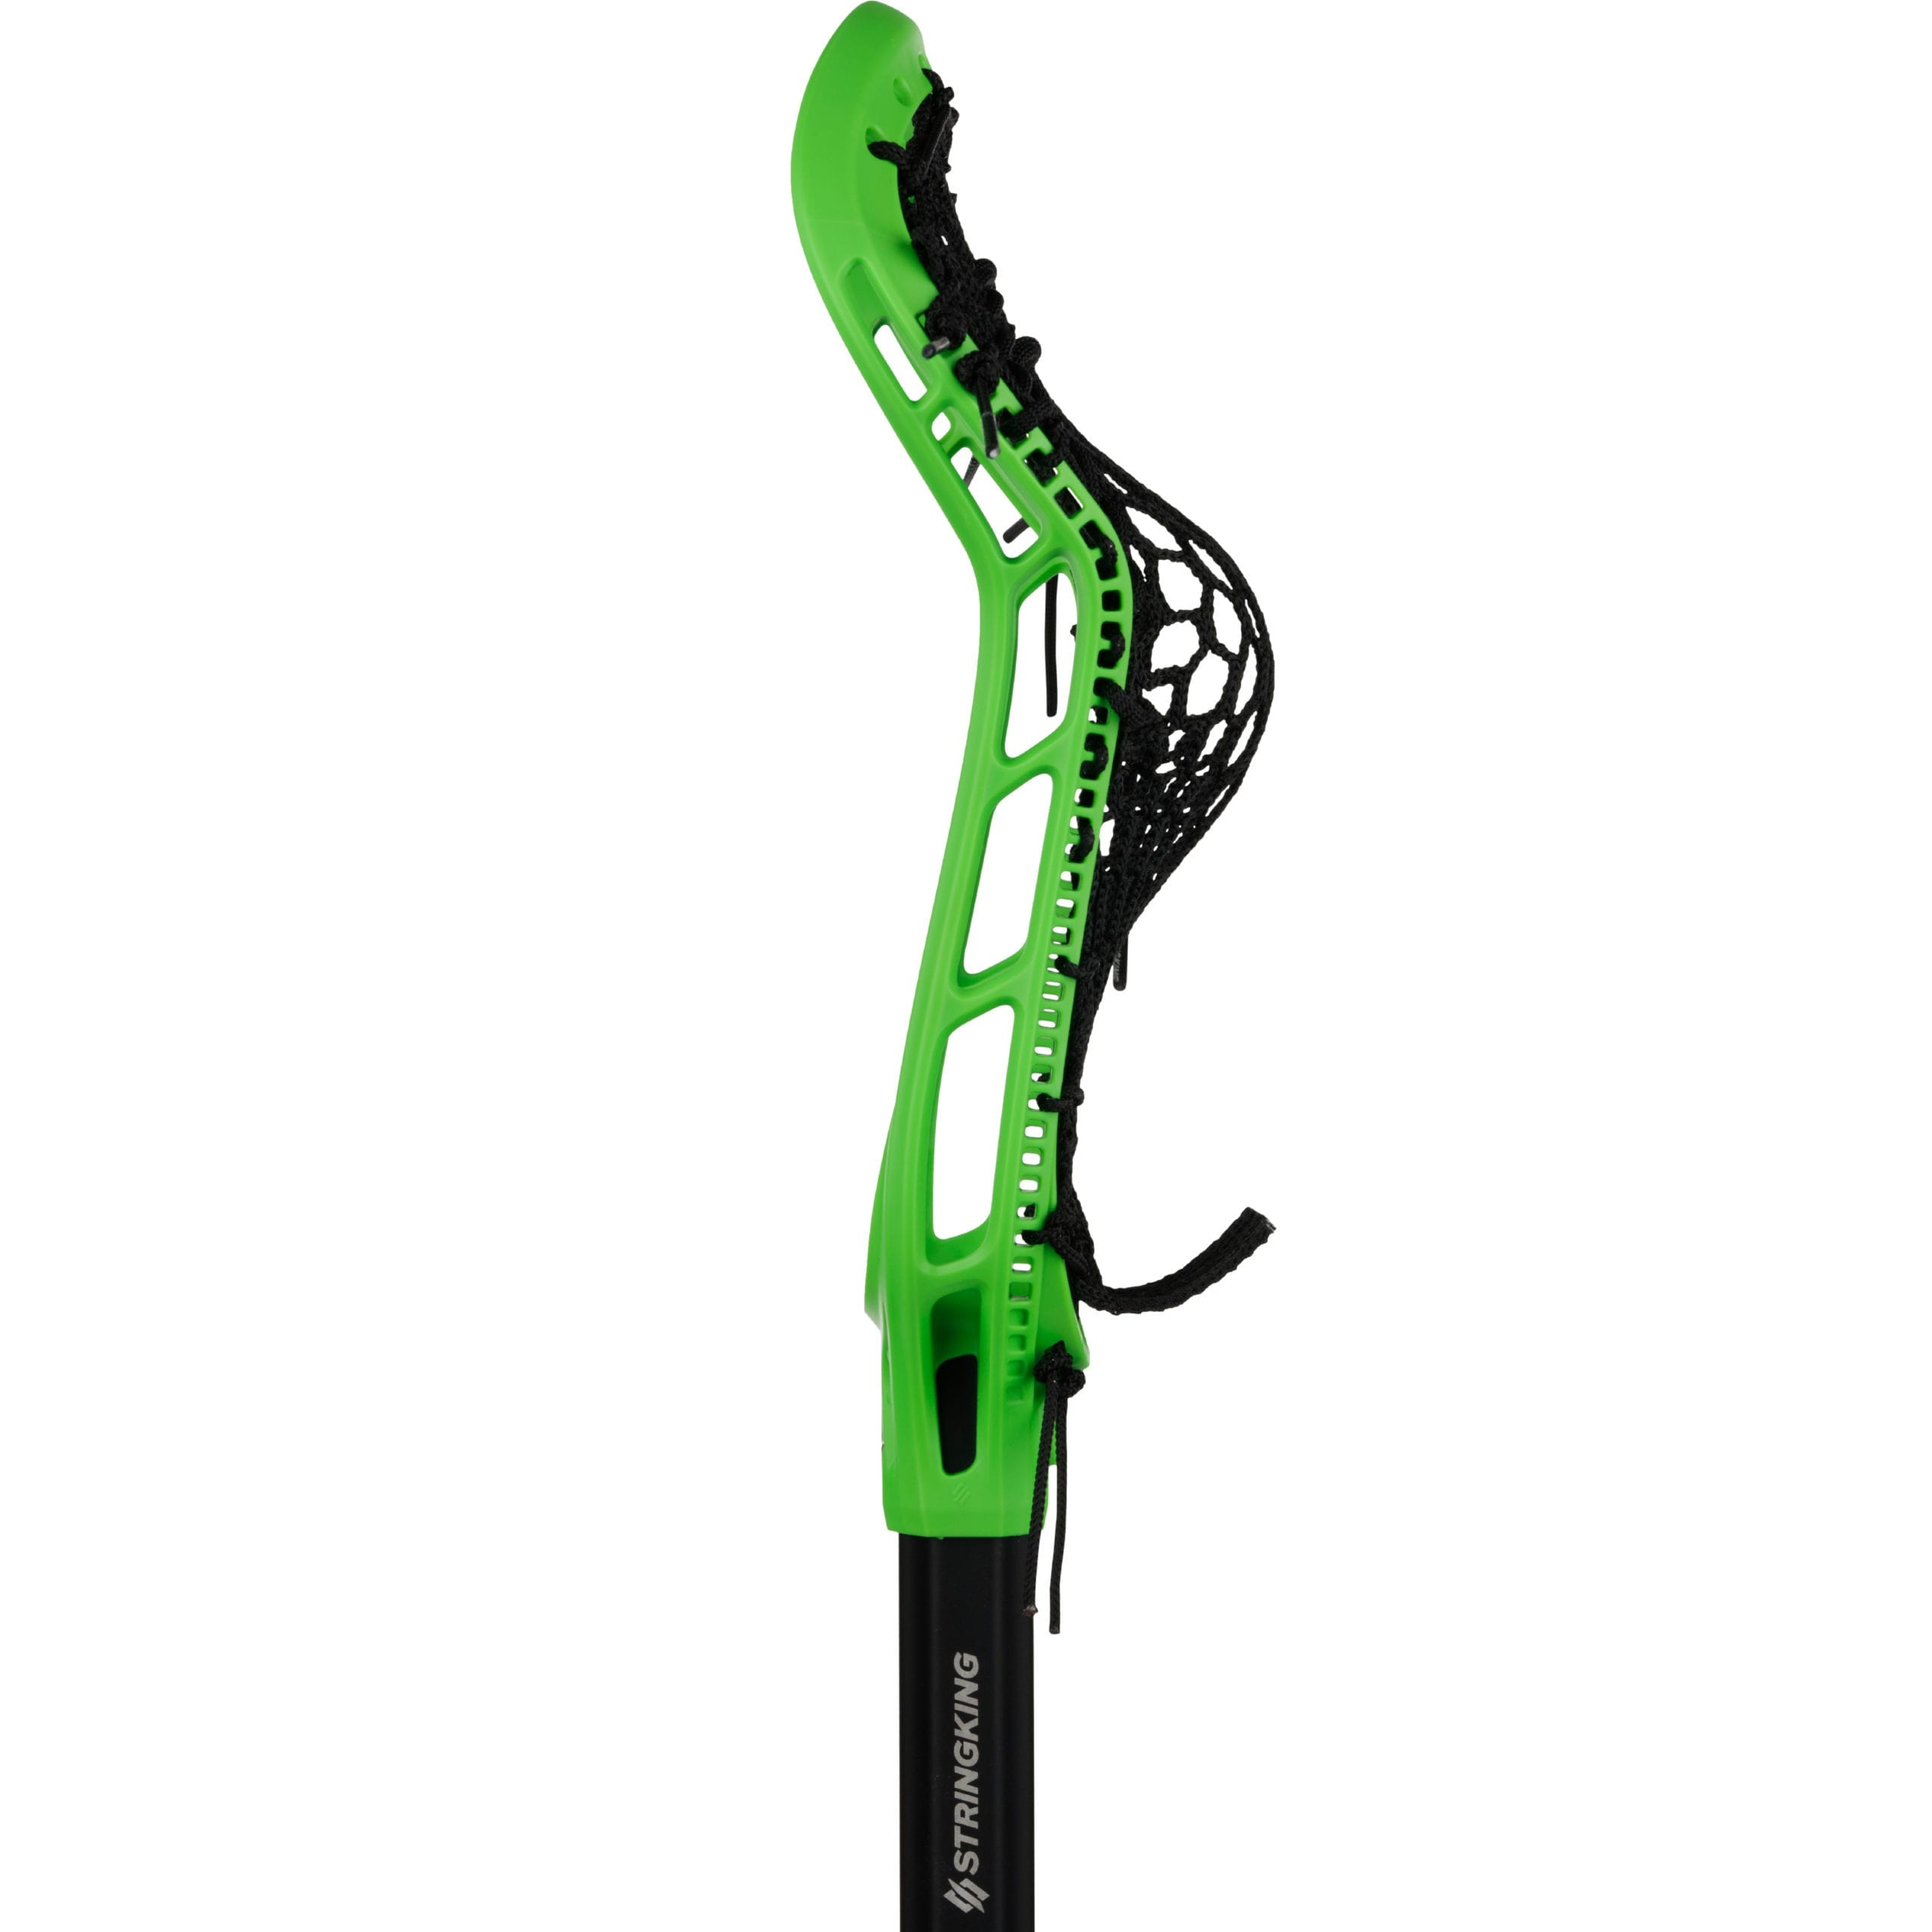 StringKing-Womens-Complete-2-Pro-Midfield-Headstrong-Strung-Gallery-Image-Sidewall-scaled-1.jpg